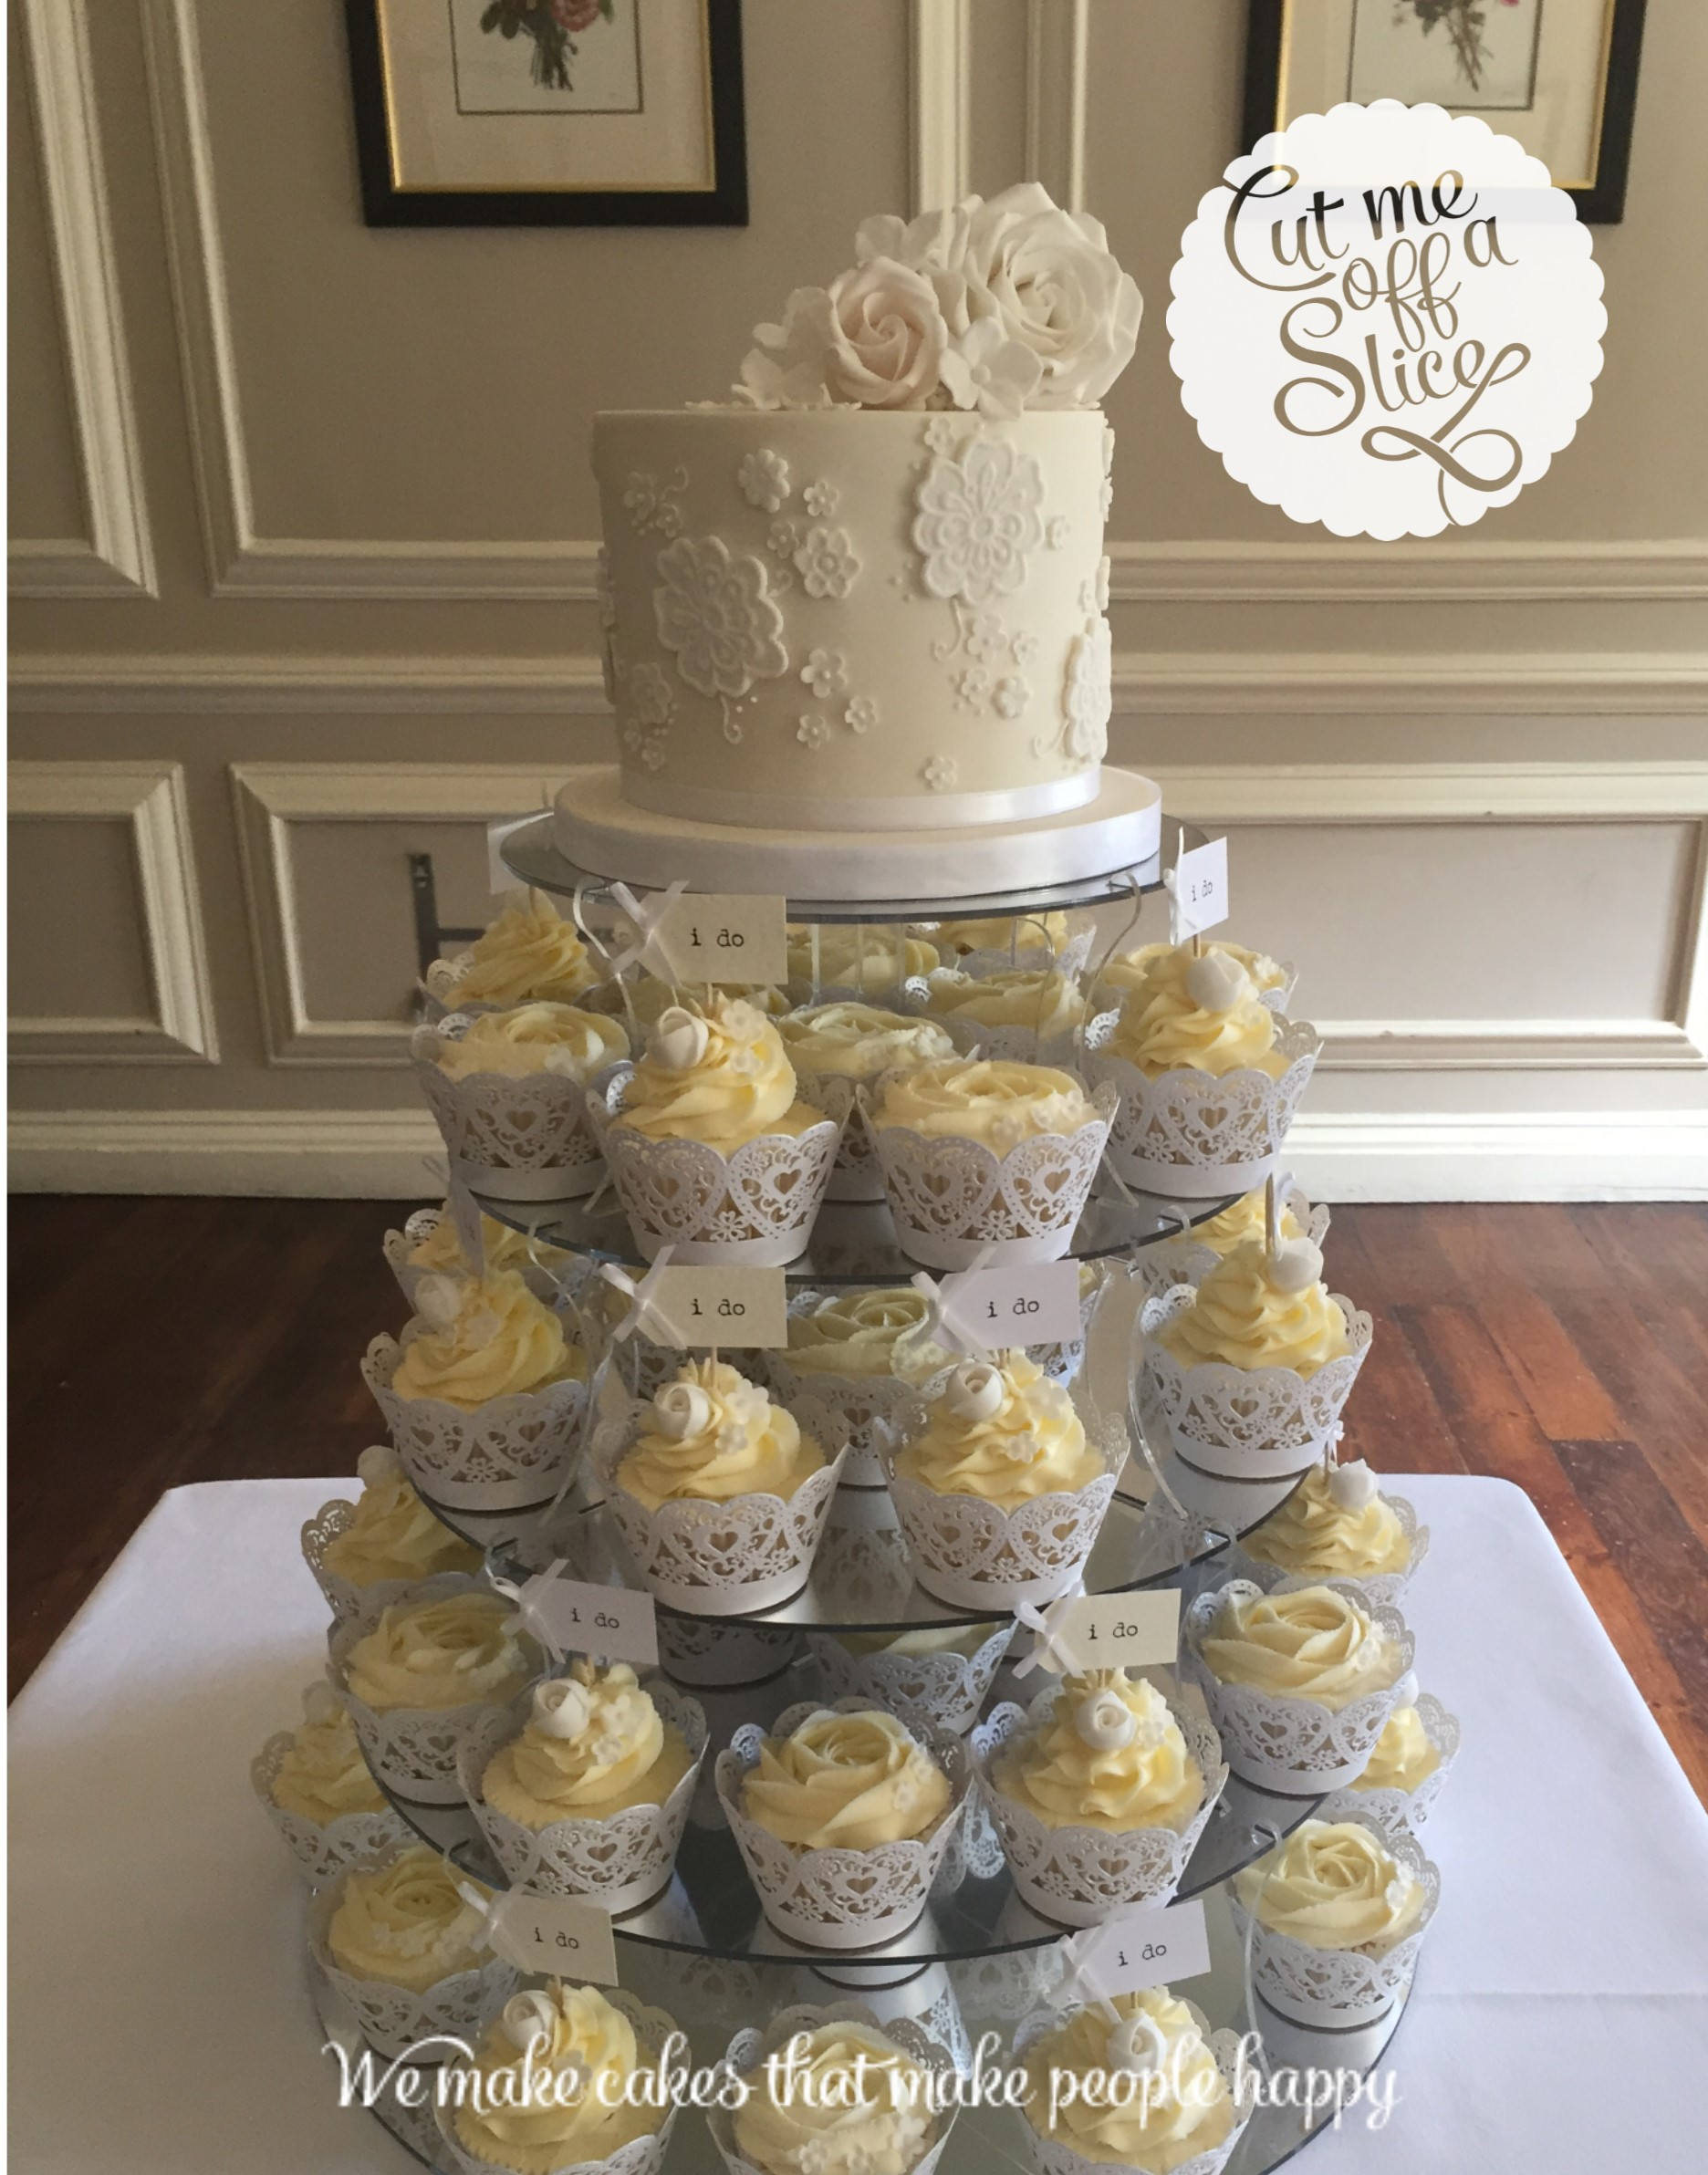 Cup Cakes - Wedding Cakes , Cut me off a slice, the cake makers ...